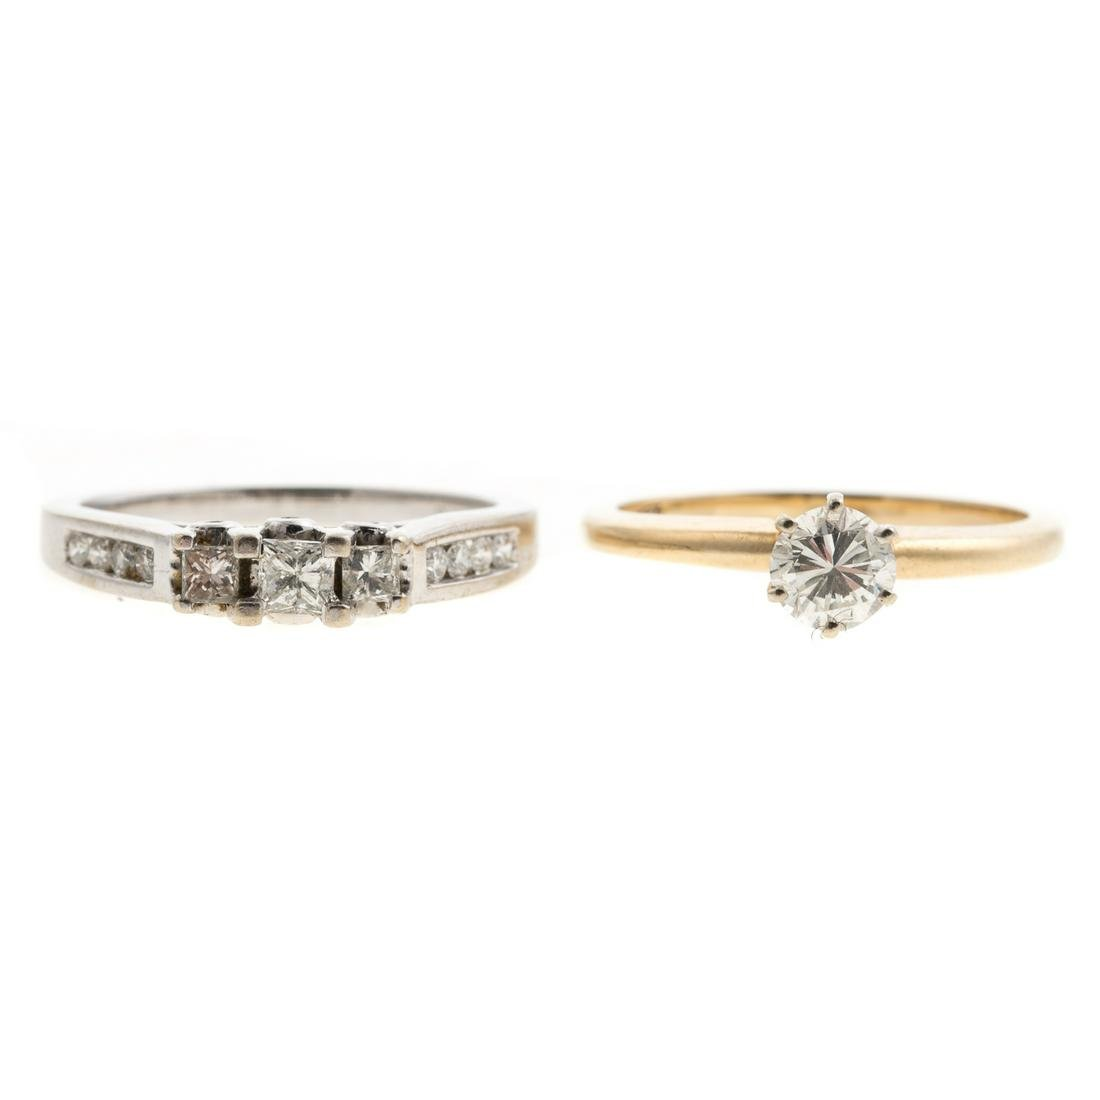 A Pair of Ladies Diamond Engagement Rings in Gold